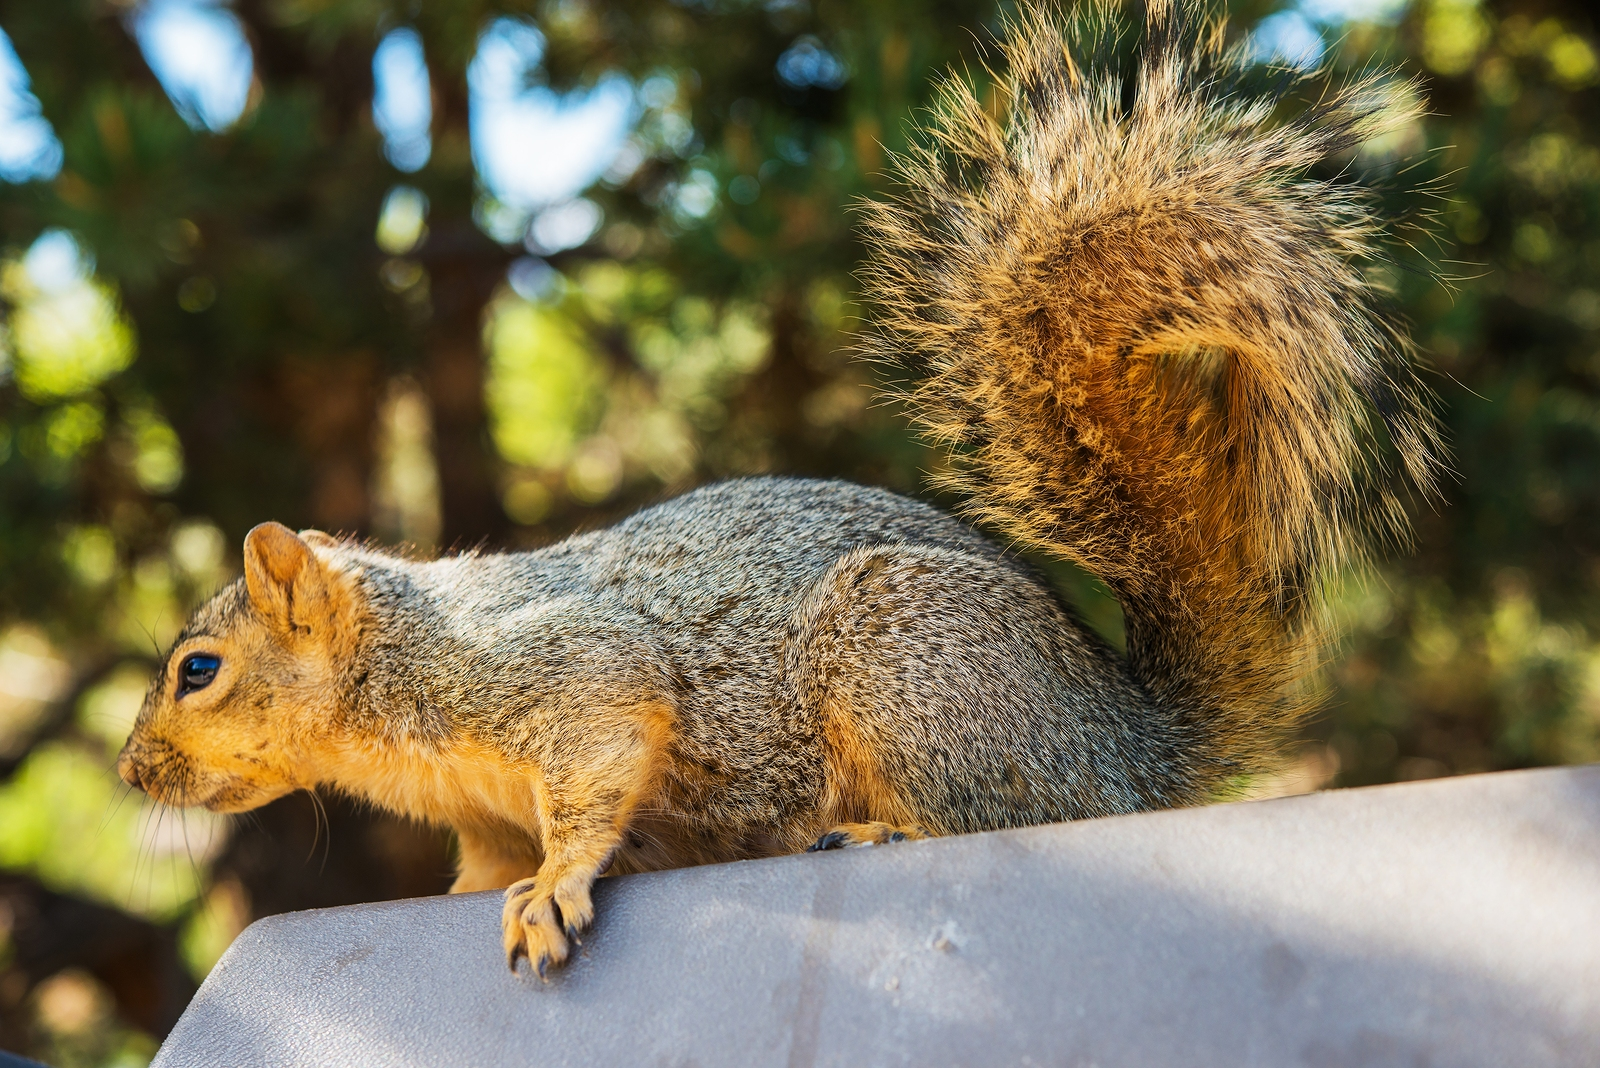 Are You Worried You Have a Squirrel Infestation?